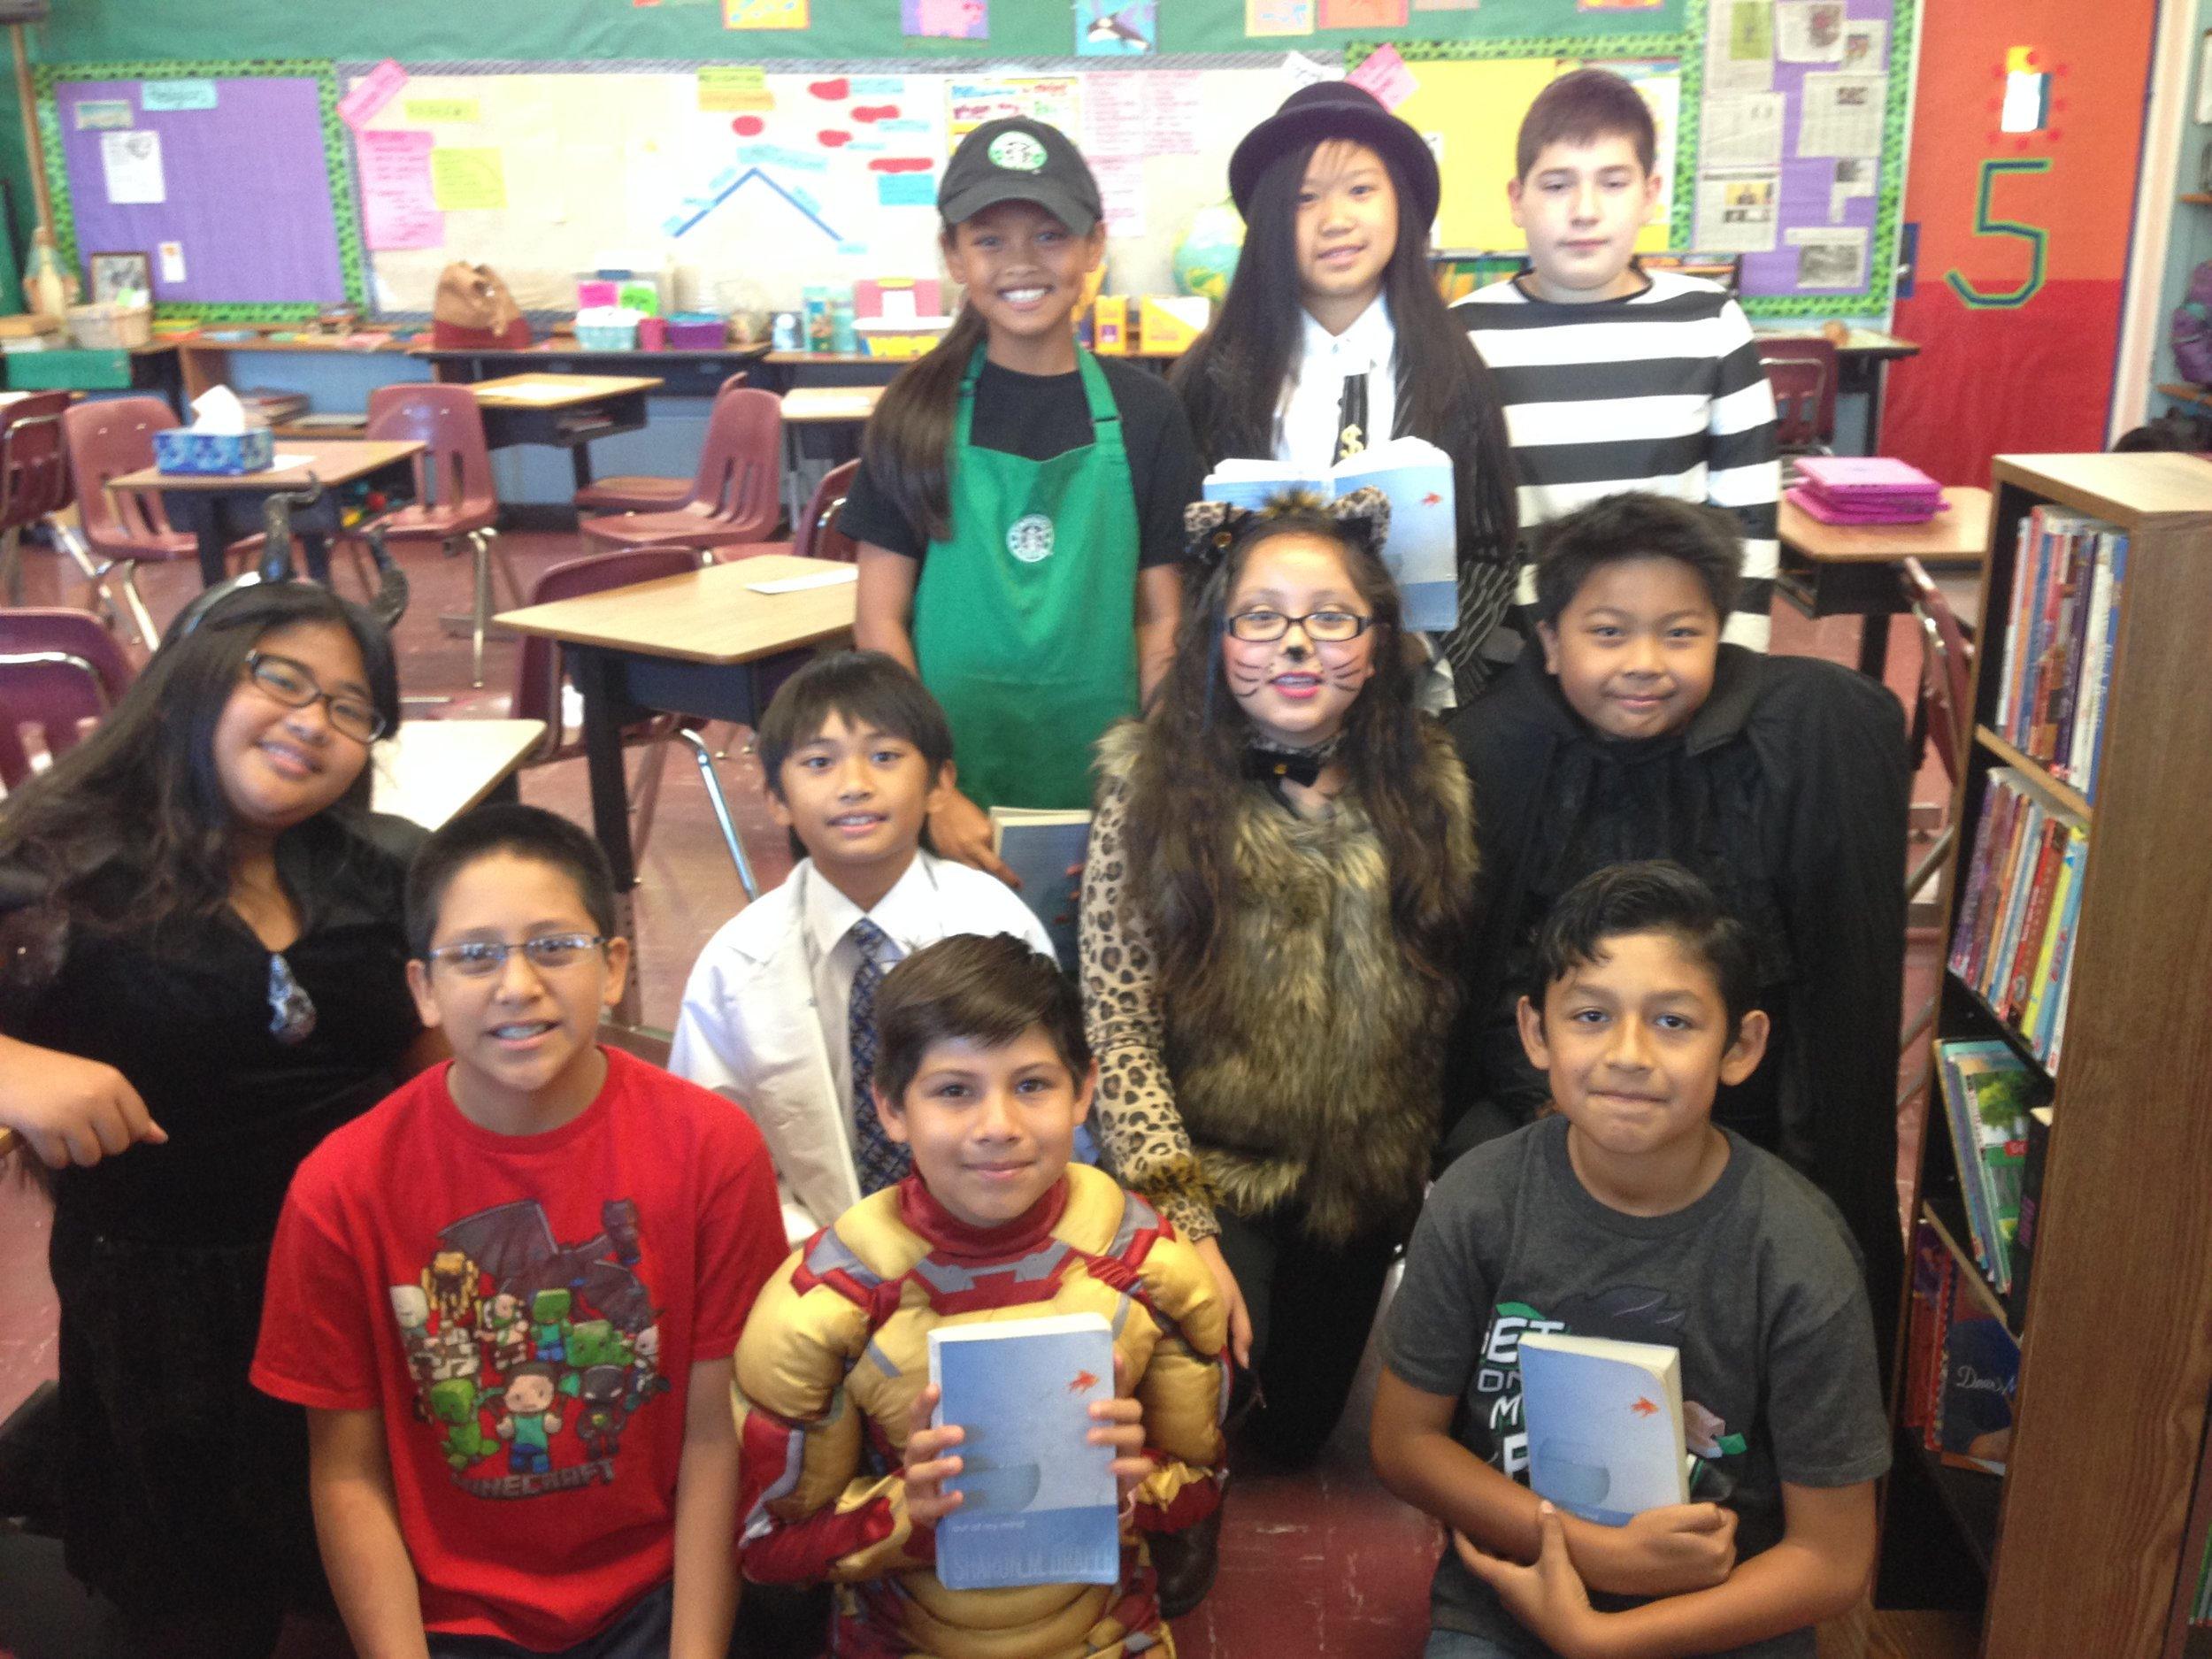 Fifth grade readers at St. Lucy Catholic School in Long Beach, California:: Grace, Giovanni, Vincent, Xavier, Alana, Zeus, Ethan, Eliyah, Samantha, and Zachary.